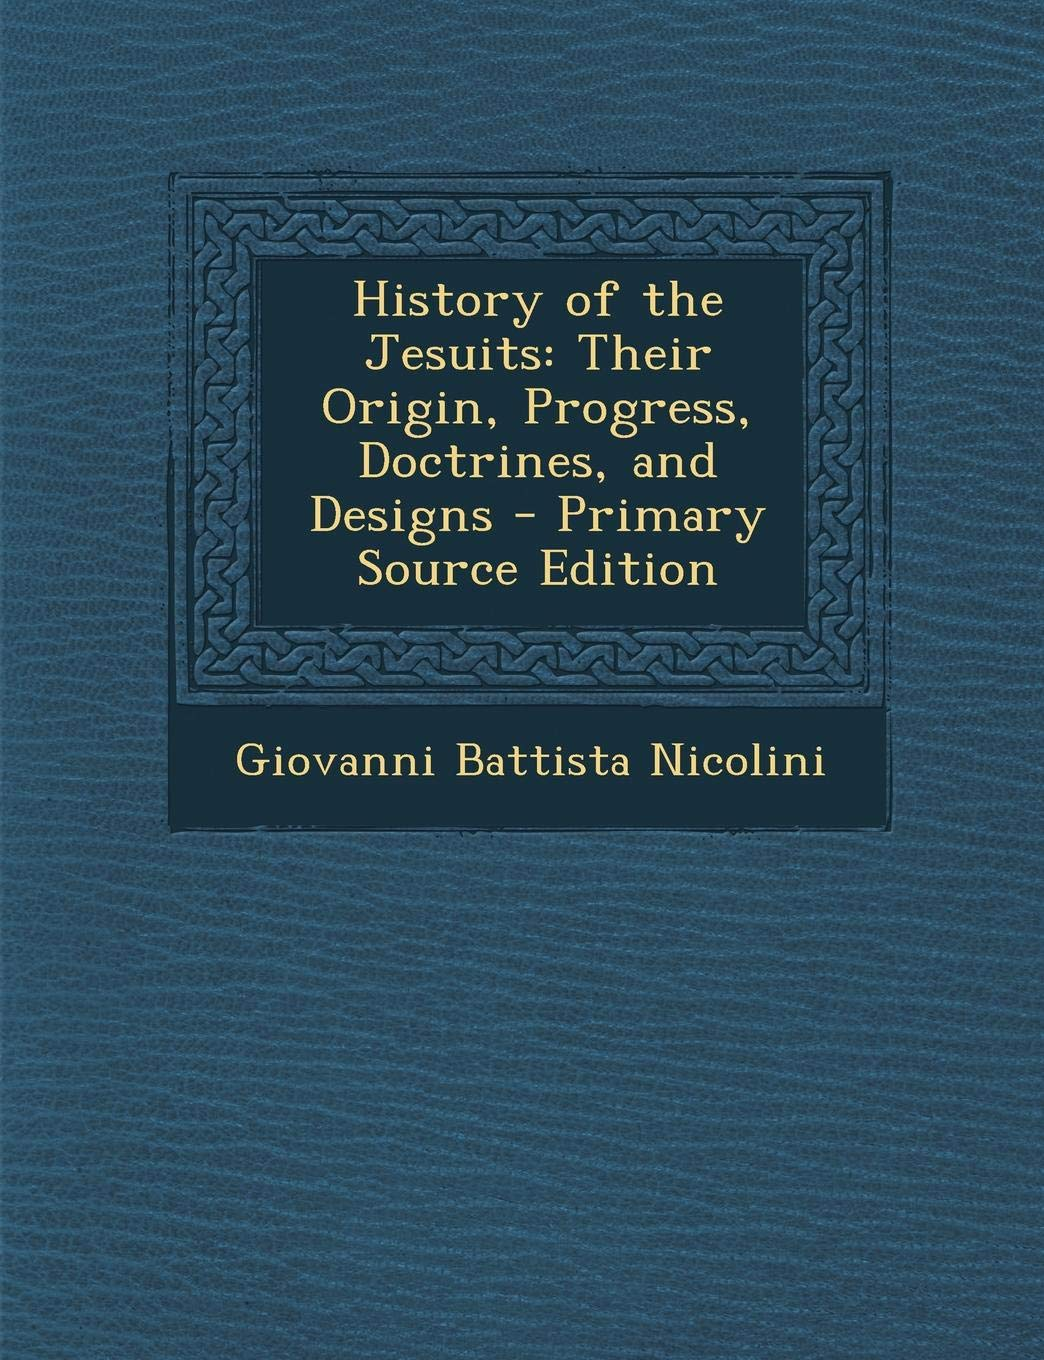 History of the Jesuits - Their Origin, Progress, Doctrines, and Designs